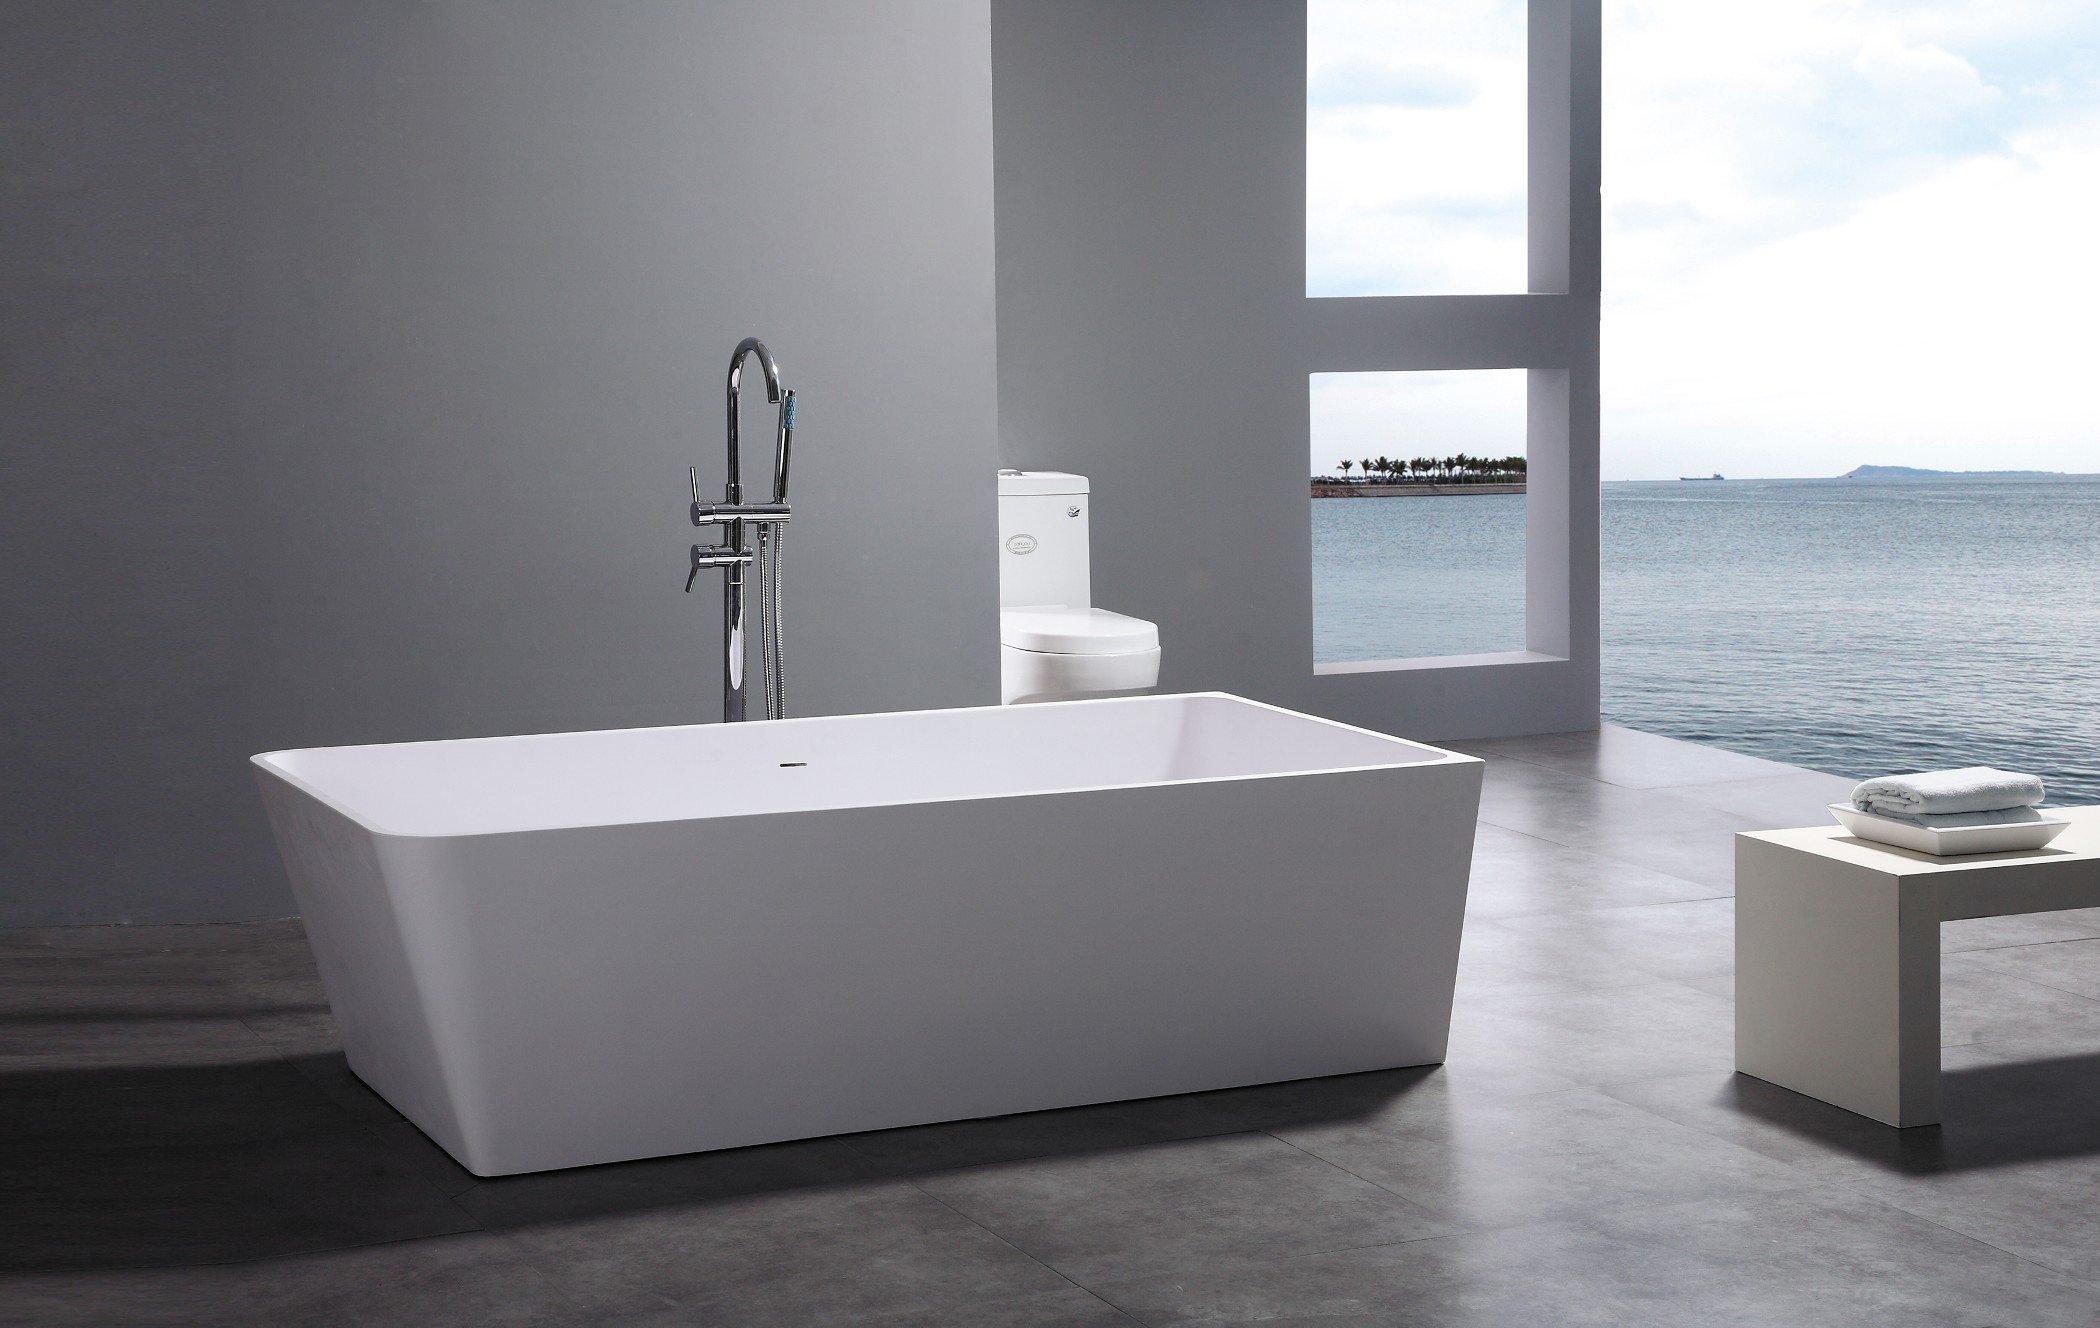 leona luxury modern bathtub 71